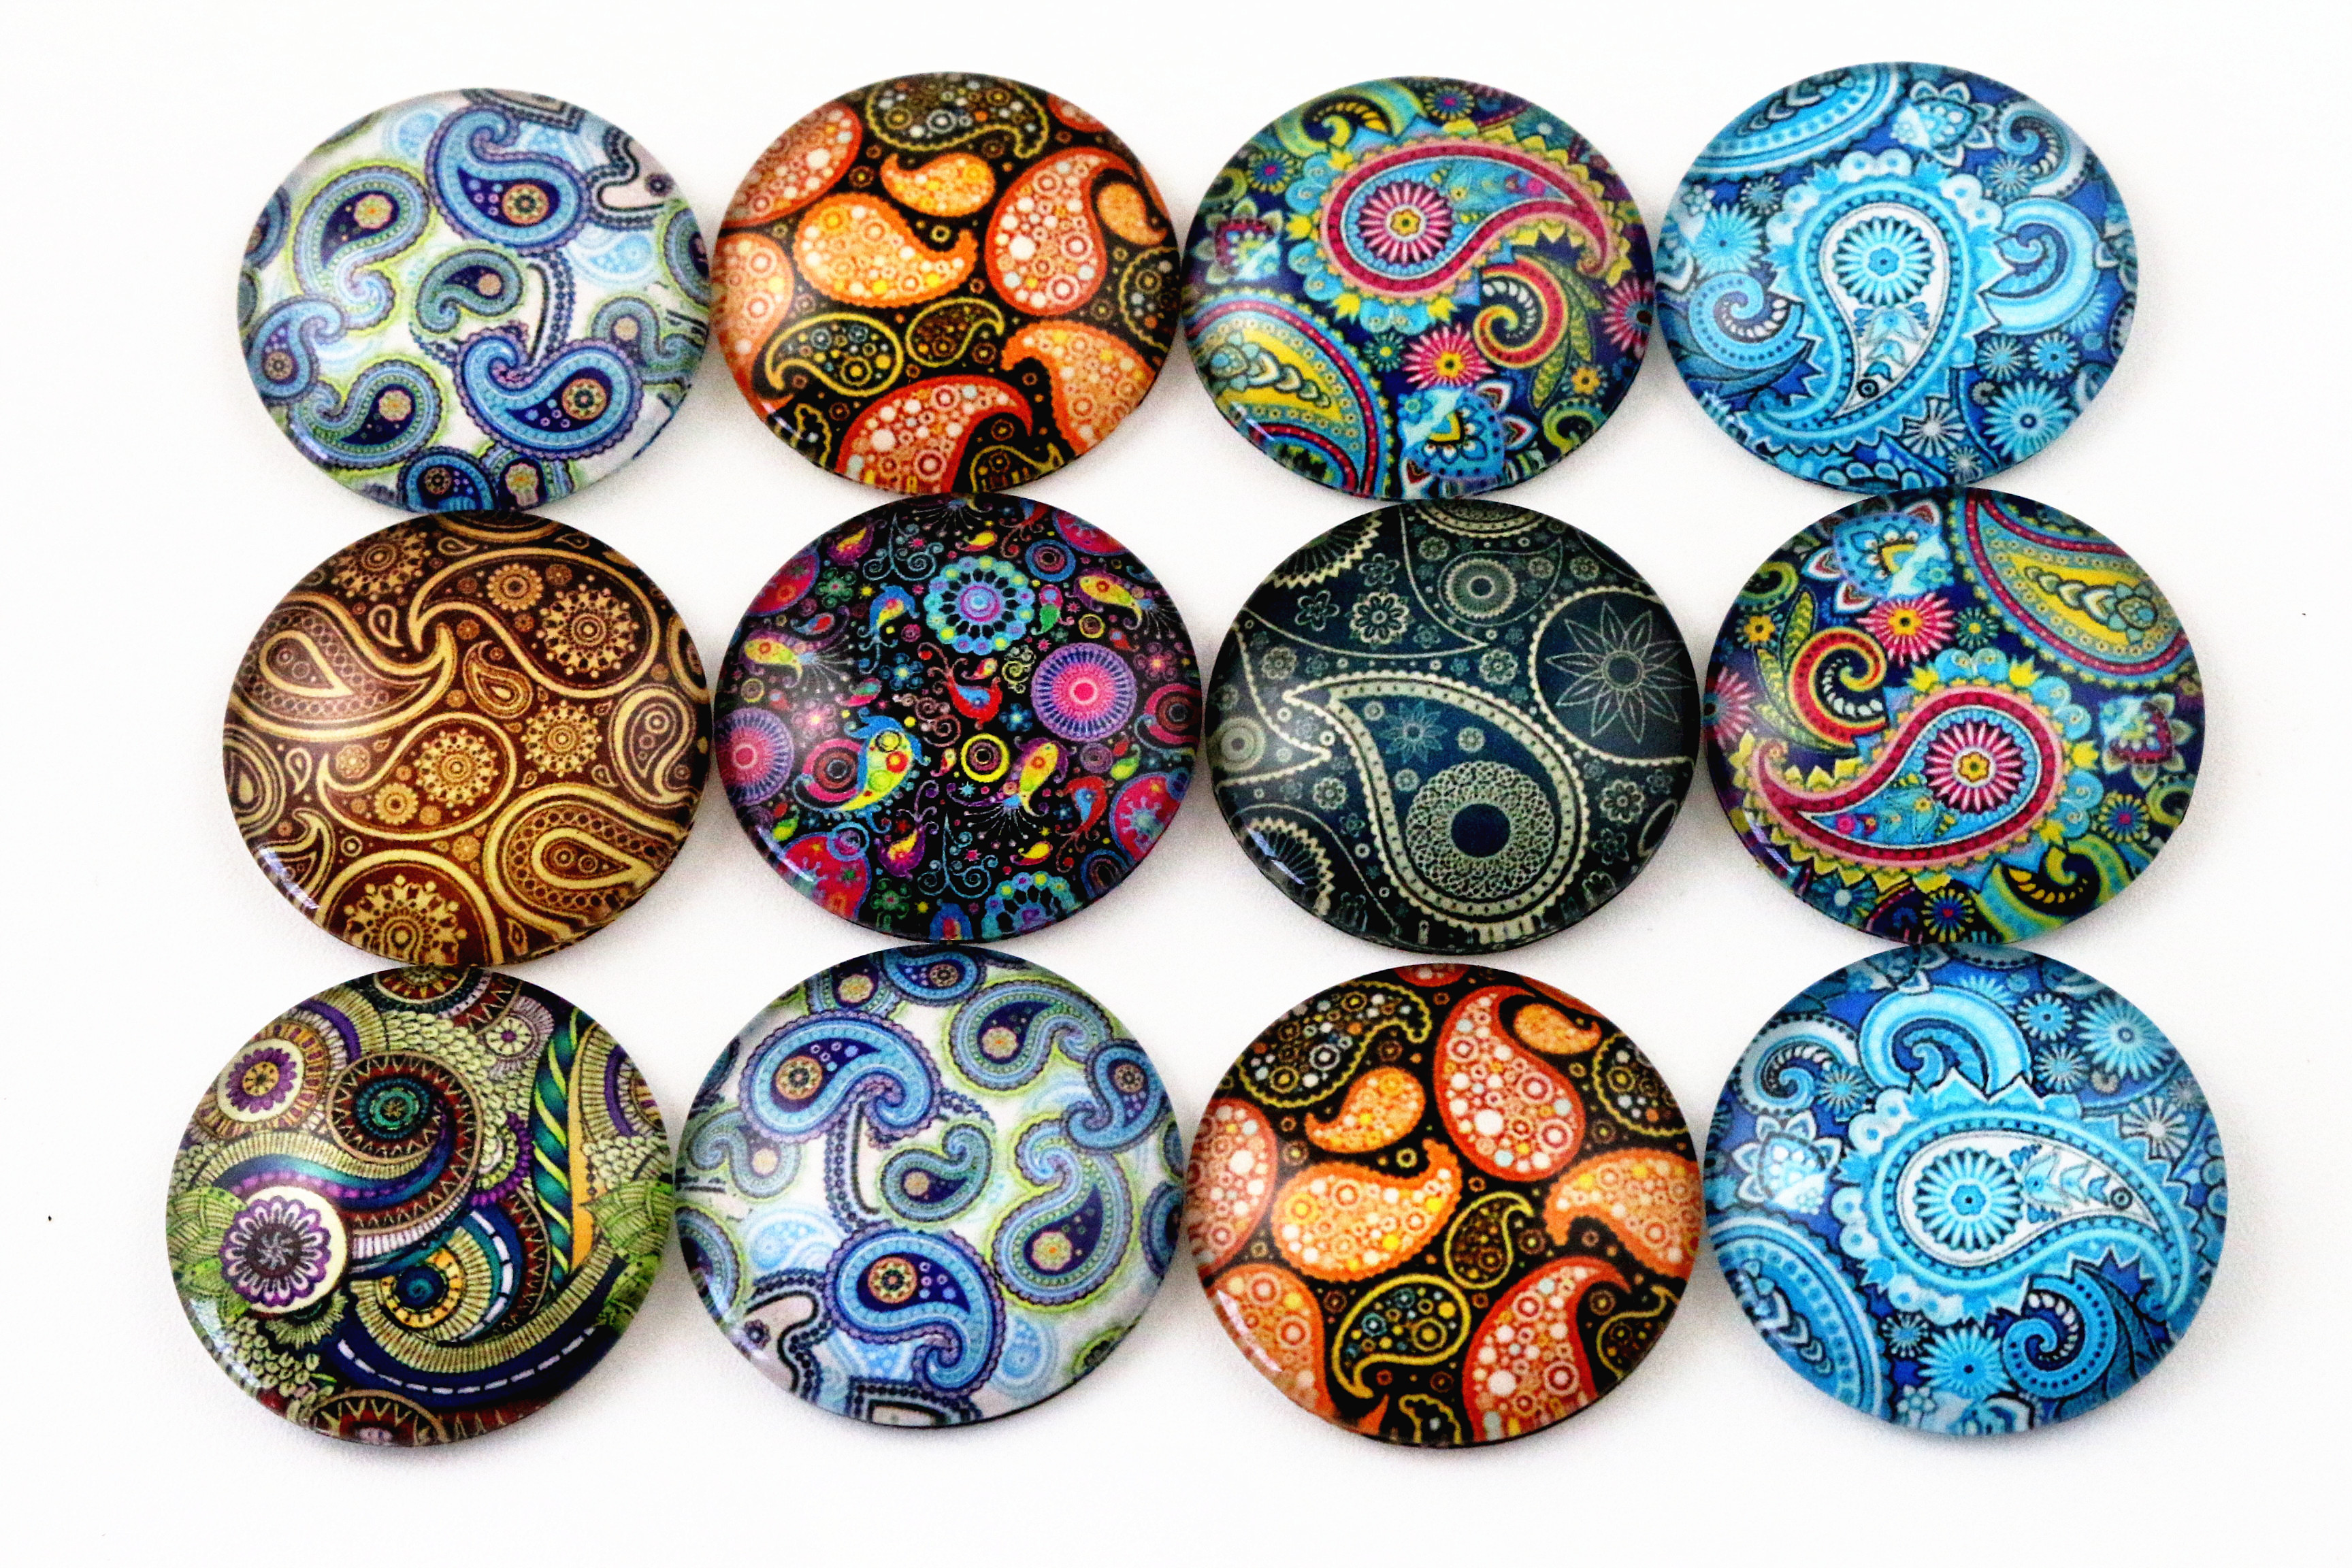 10pcs 20mm And 25mm New Fashion Texture Mixed Handmade Photo Glass Cabochons Pattern Domed Jewelry Accessories Supplies new fashion 5pcs lot 25mm handmade photo glass cabochons beautiful butterfly series